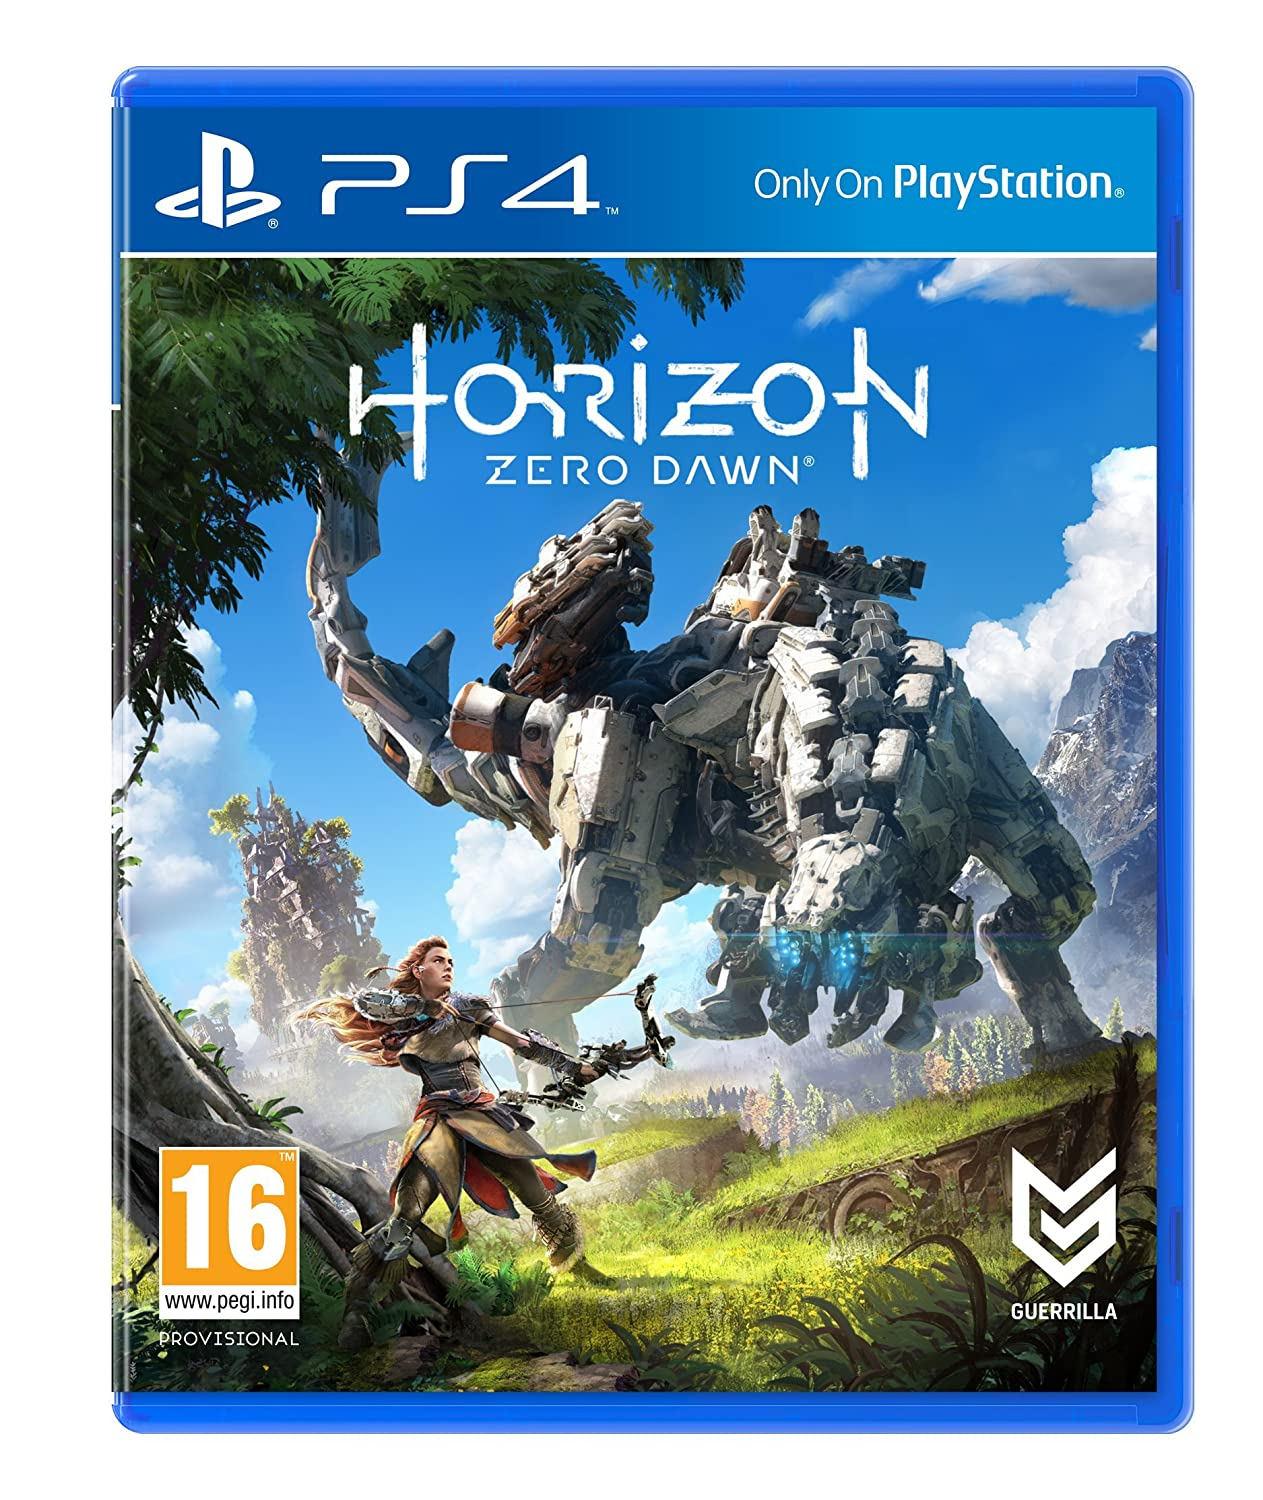 Daily Deals: Horizon: Zero Dawn, For Honor, Bruce Lee Master Collection [Blu-ray]